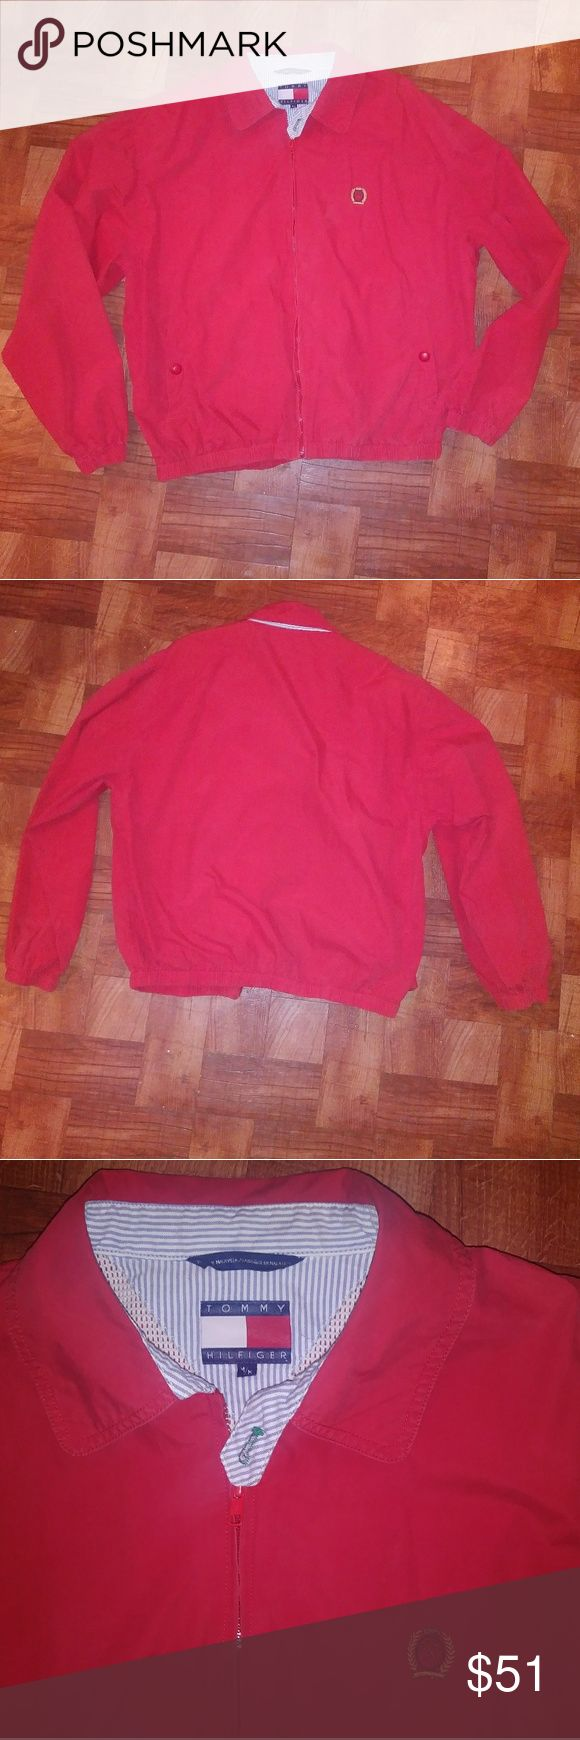 Vintage Tommy Hilfiger Red Bomber Jacket Your everyday look! Perfect lightweight.. No tears. Has wear and some fading but still great look! Zips and has button by collar. Buttons on side pockets as well. Loved 💕 Tommy Hilfiger Jackets & Coats Bomber & Varsity